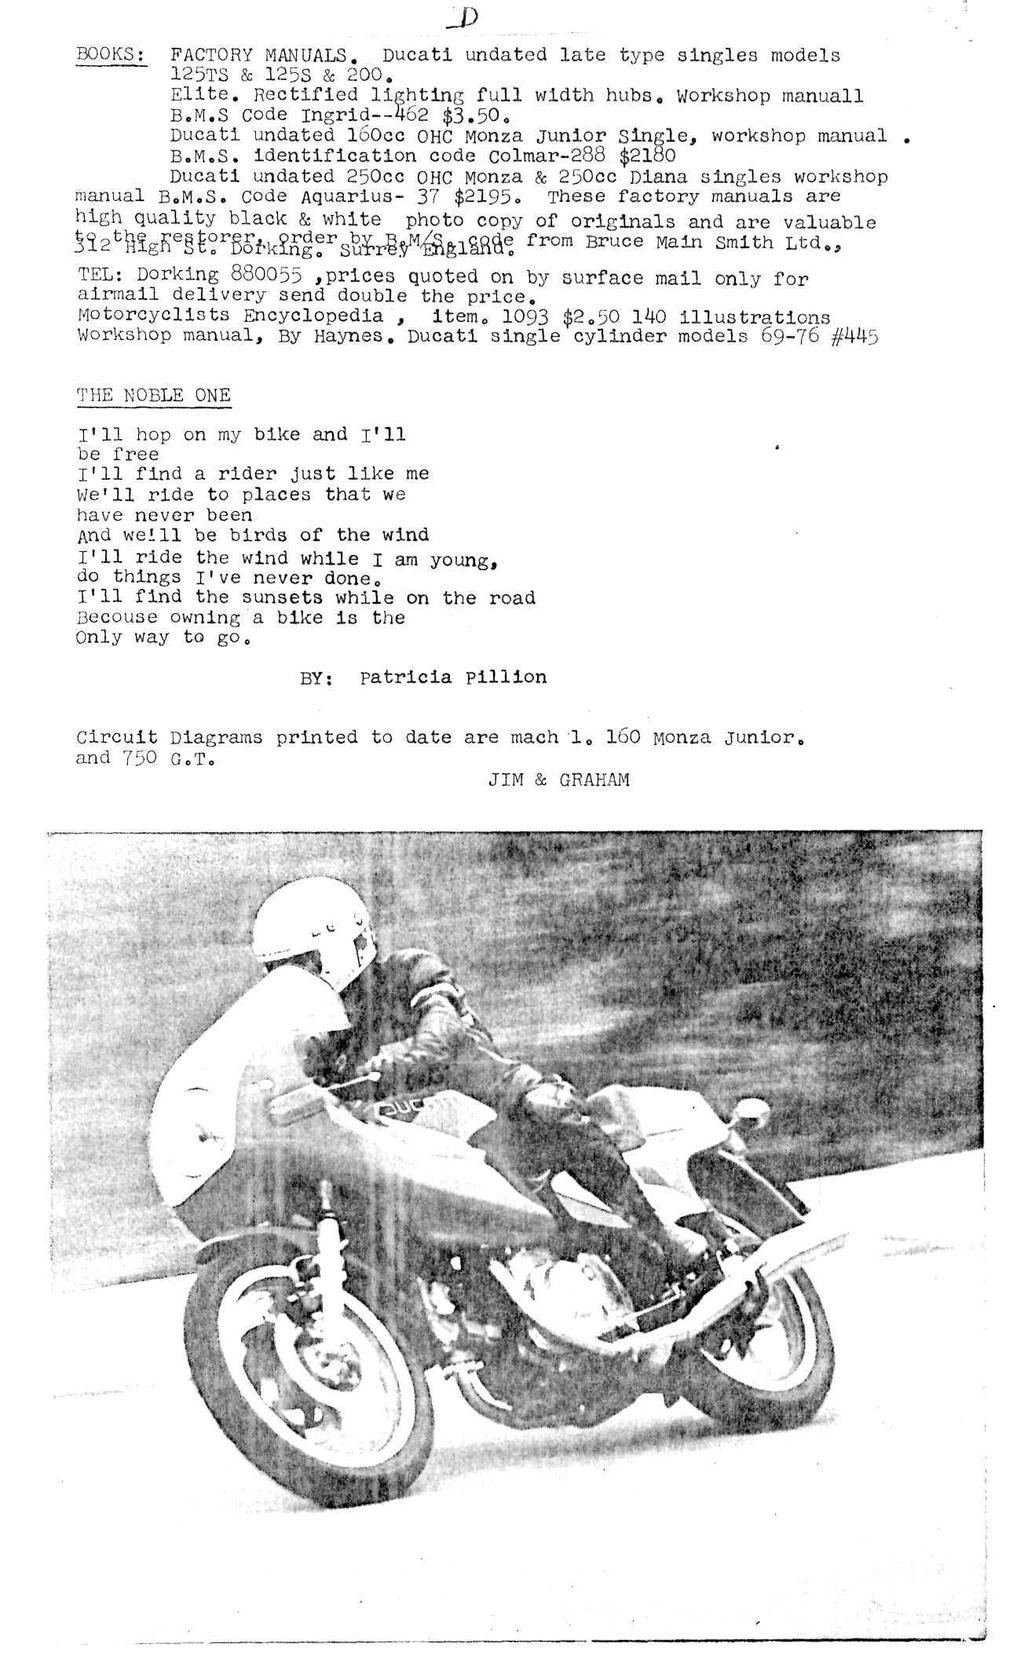 Ducati Owners Club Of Canada Moto Desmo Pdf 888 Wiring Diagram J Books Factory Manuals Ducatl Undated Late Type Singles Models 125ts 125s